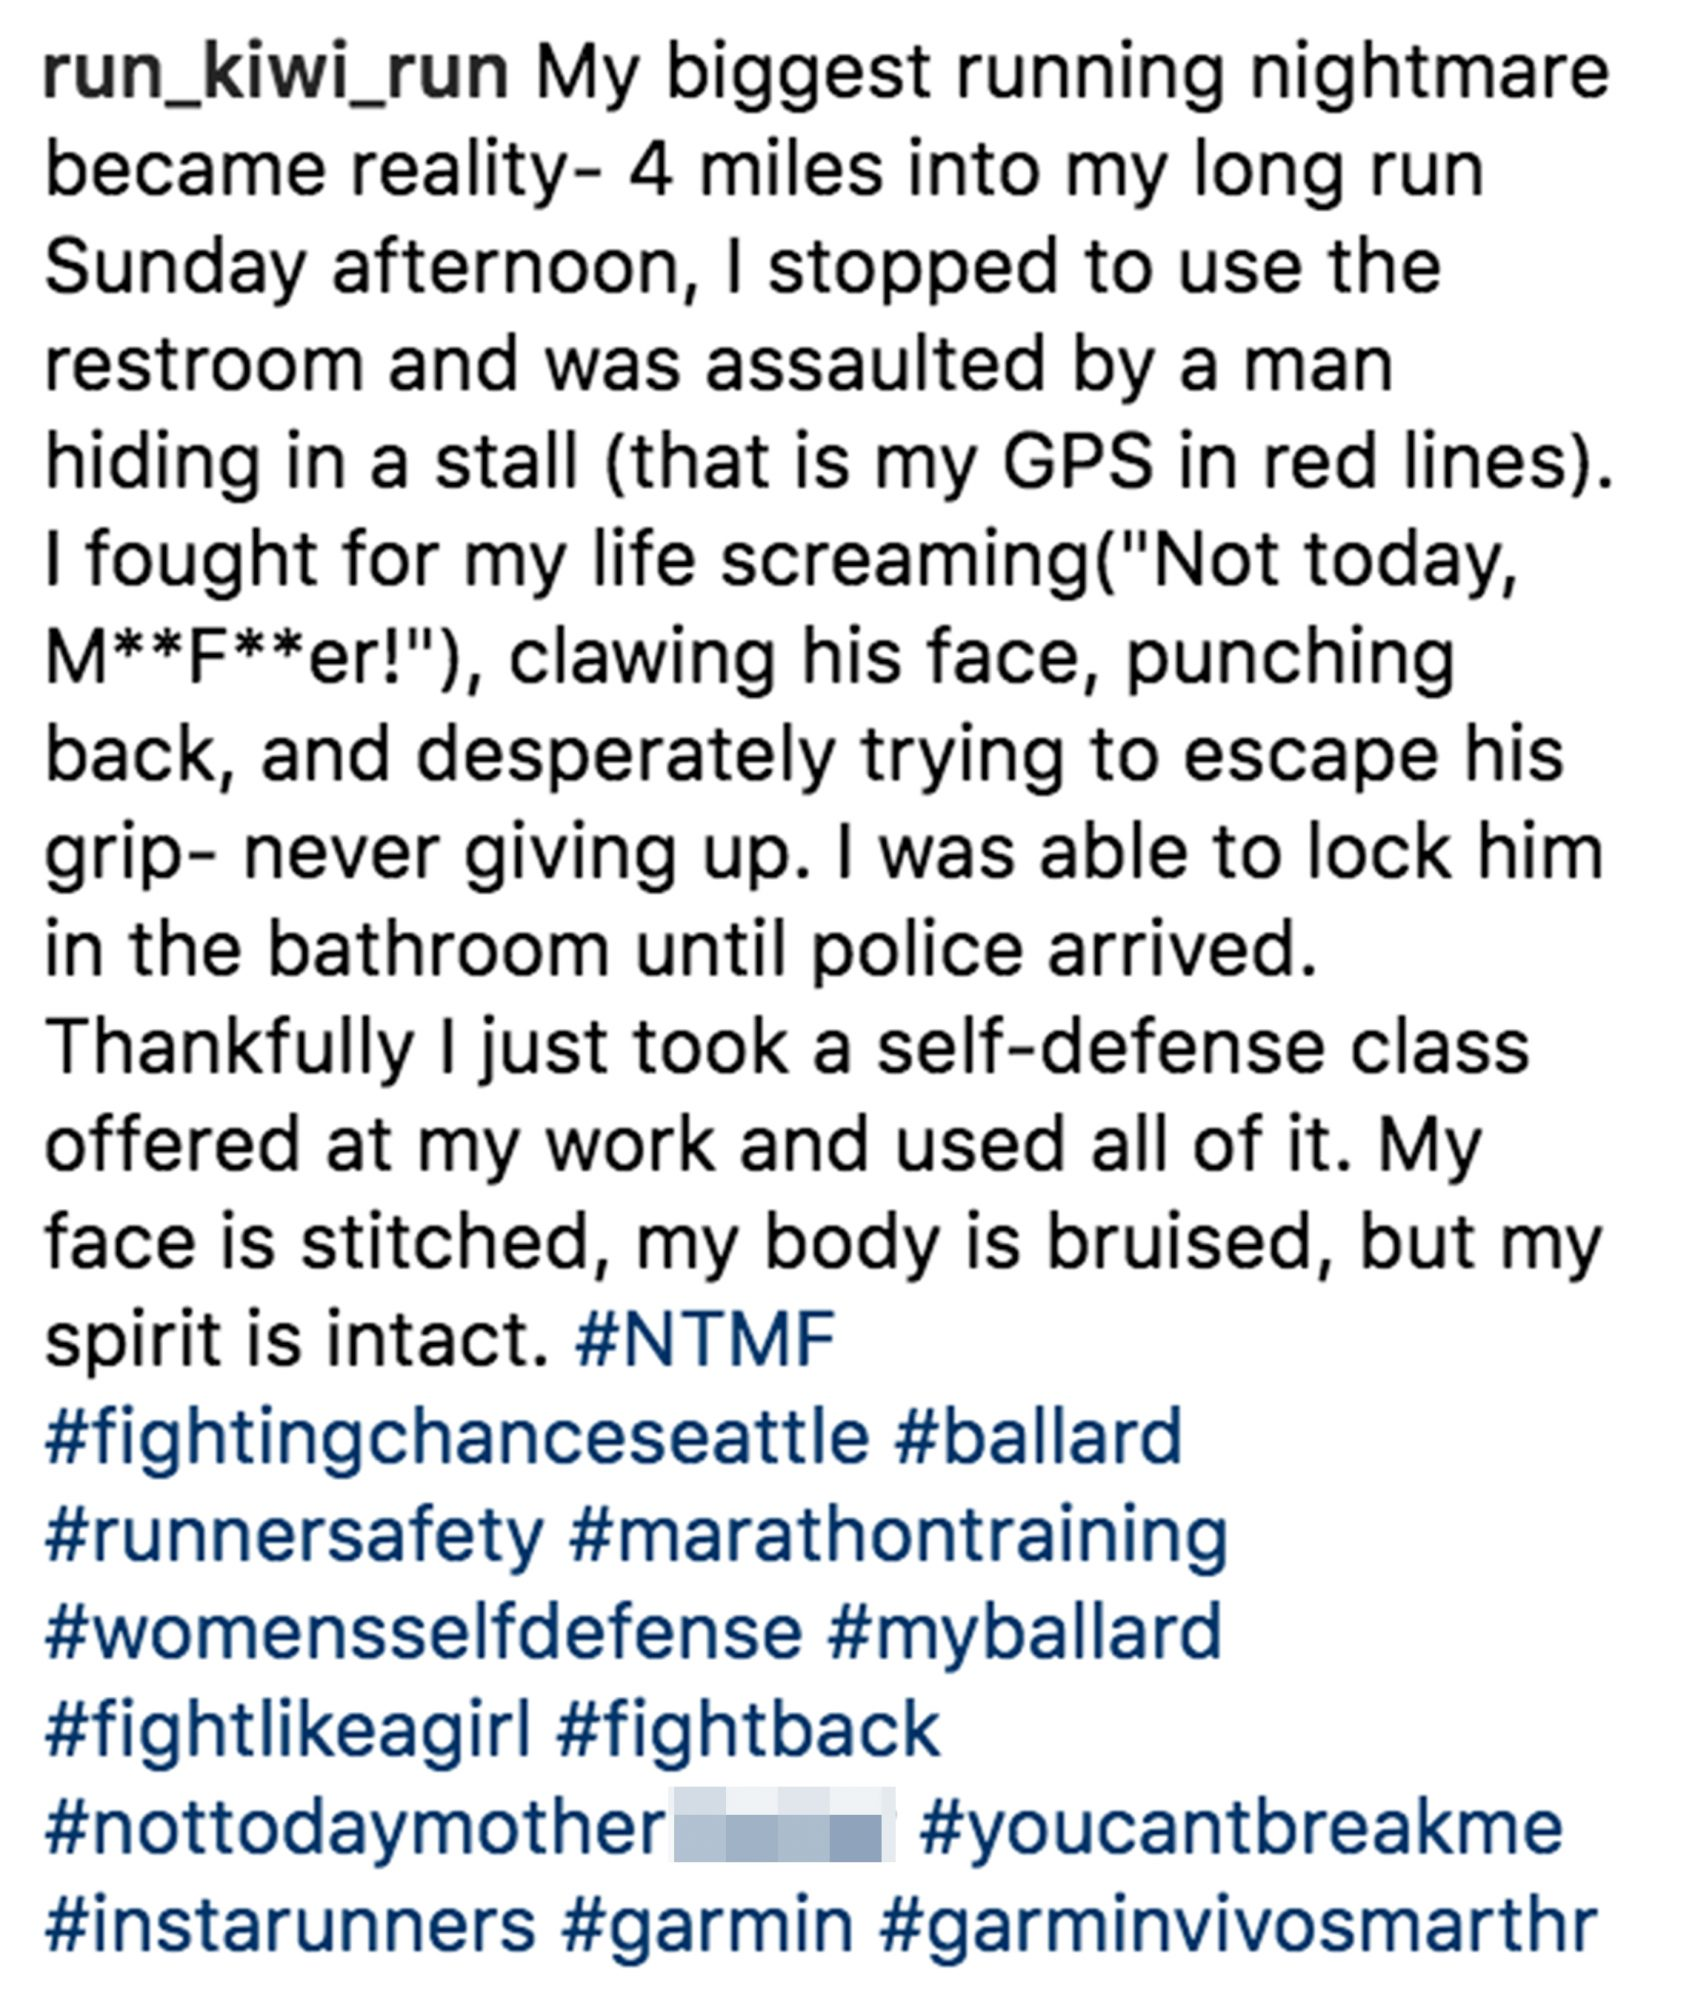 Washington state jogger fends off rapistCredit: Courtesy Kelly Herron